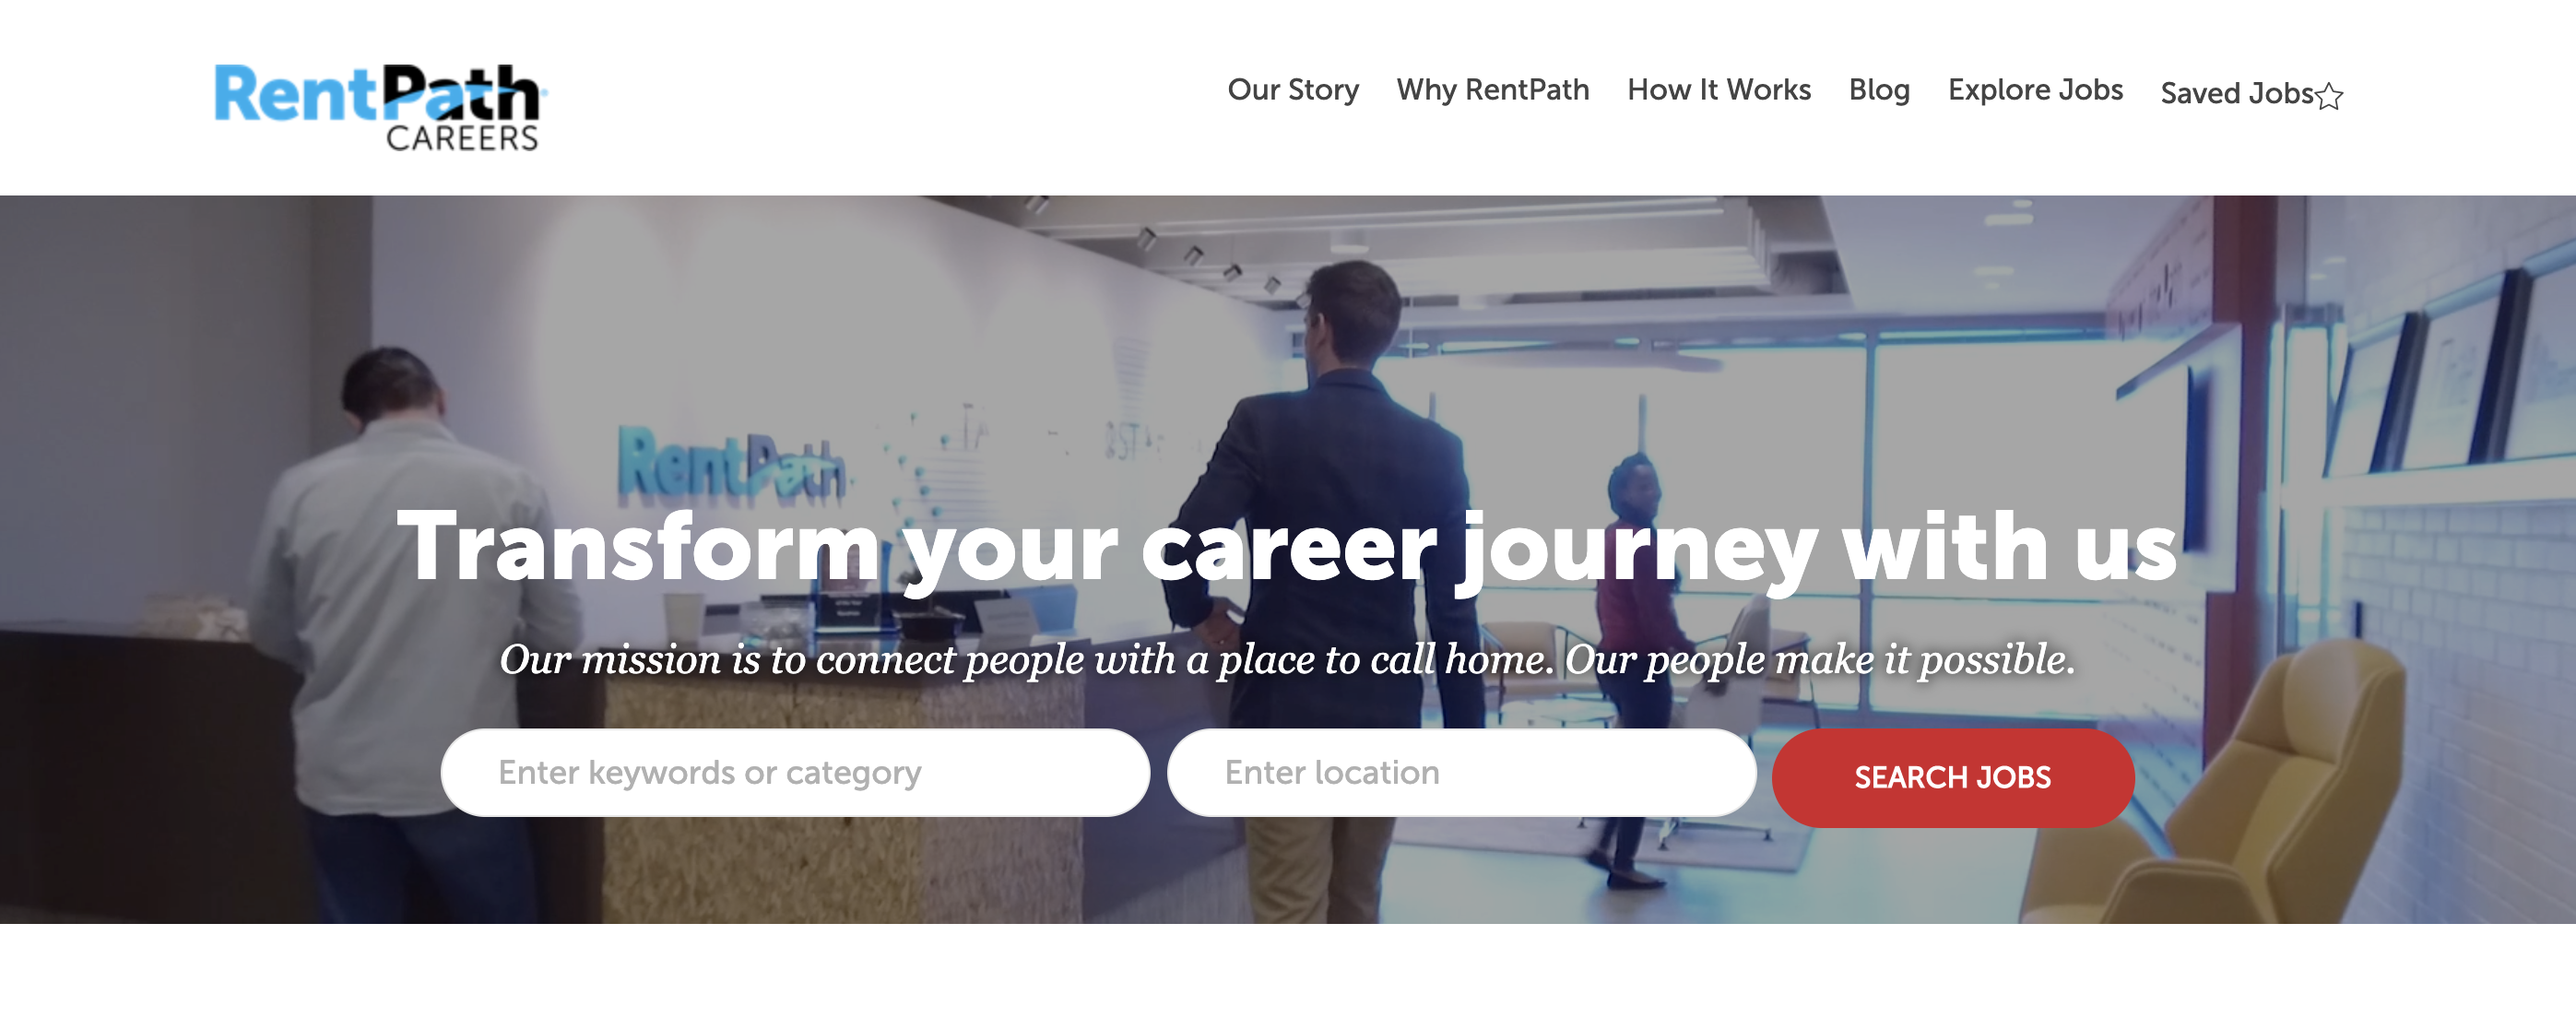 RentPath career site's homepage